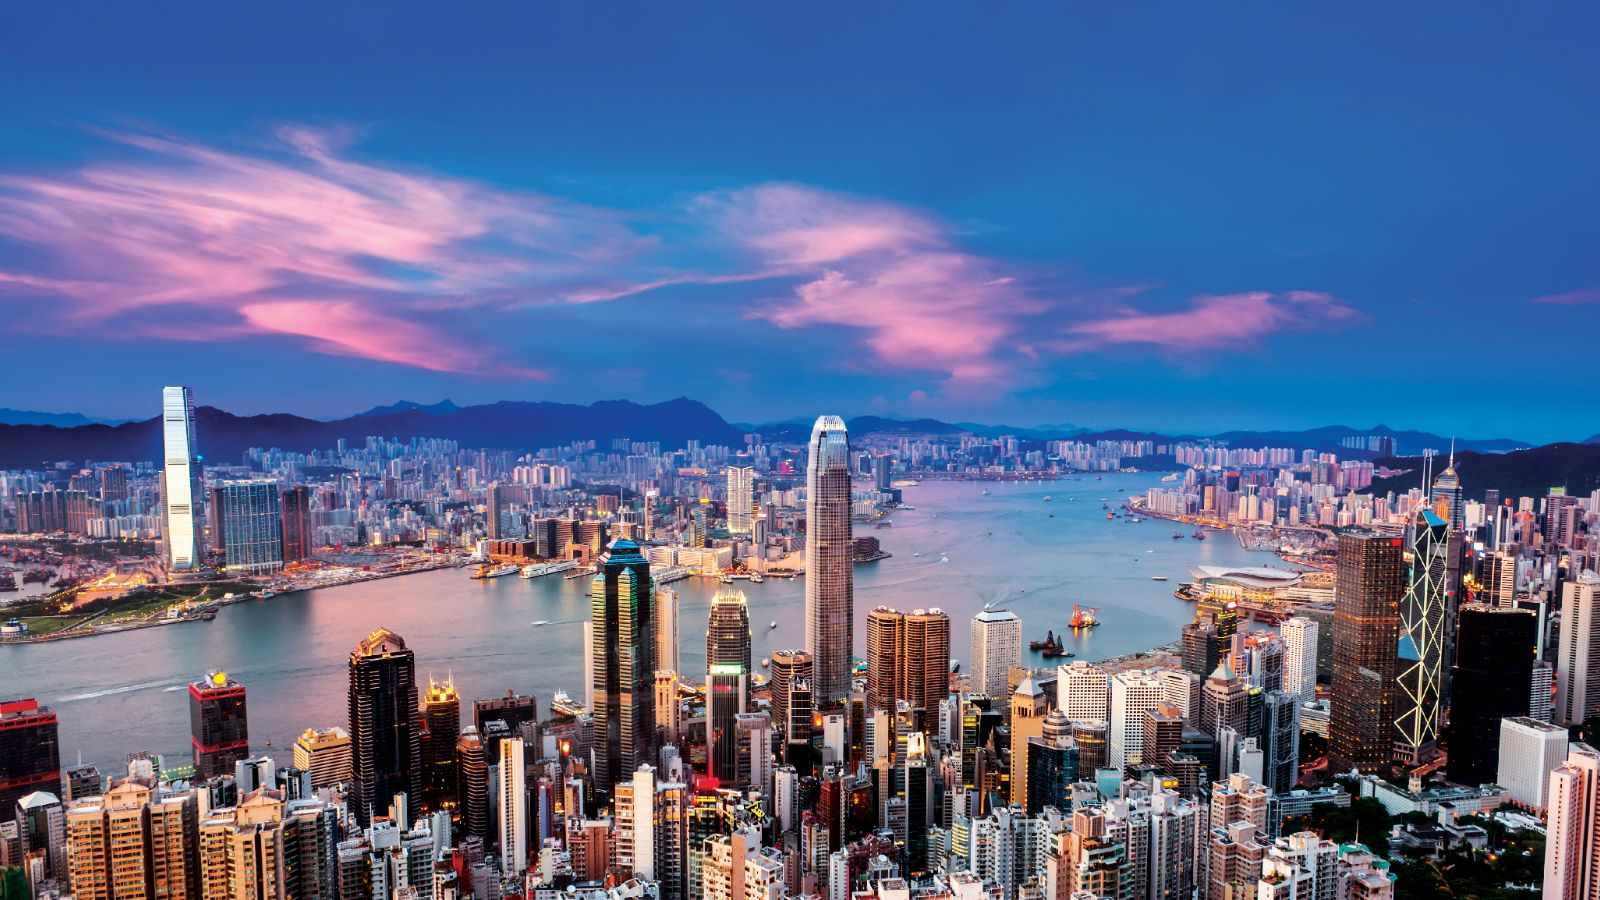 8 of the best ways to marvel at iconic Victoria Harbour